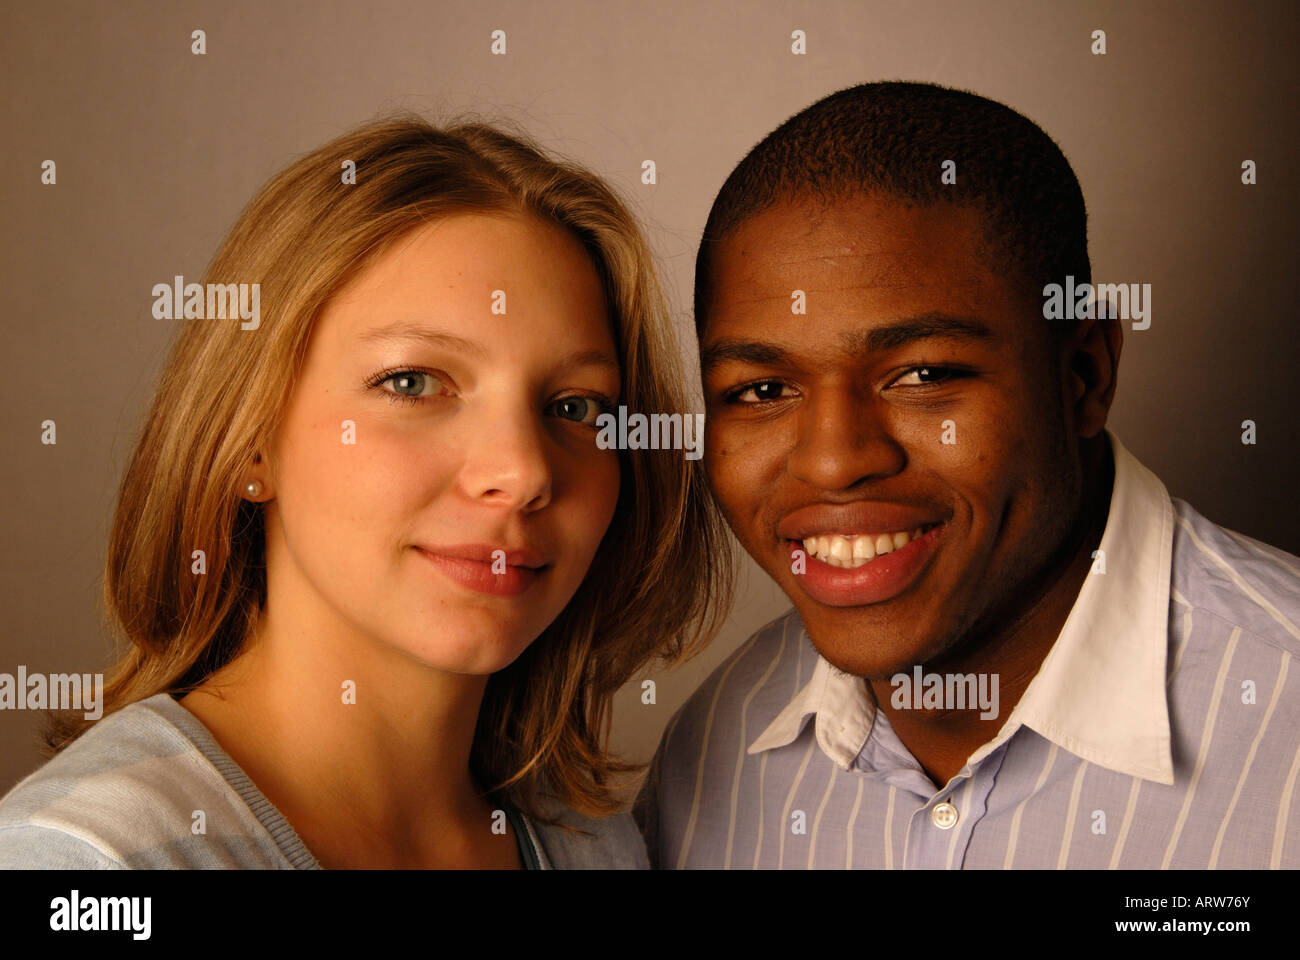 Young mixed race couple. - Stock Image